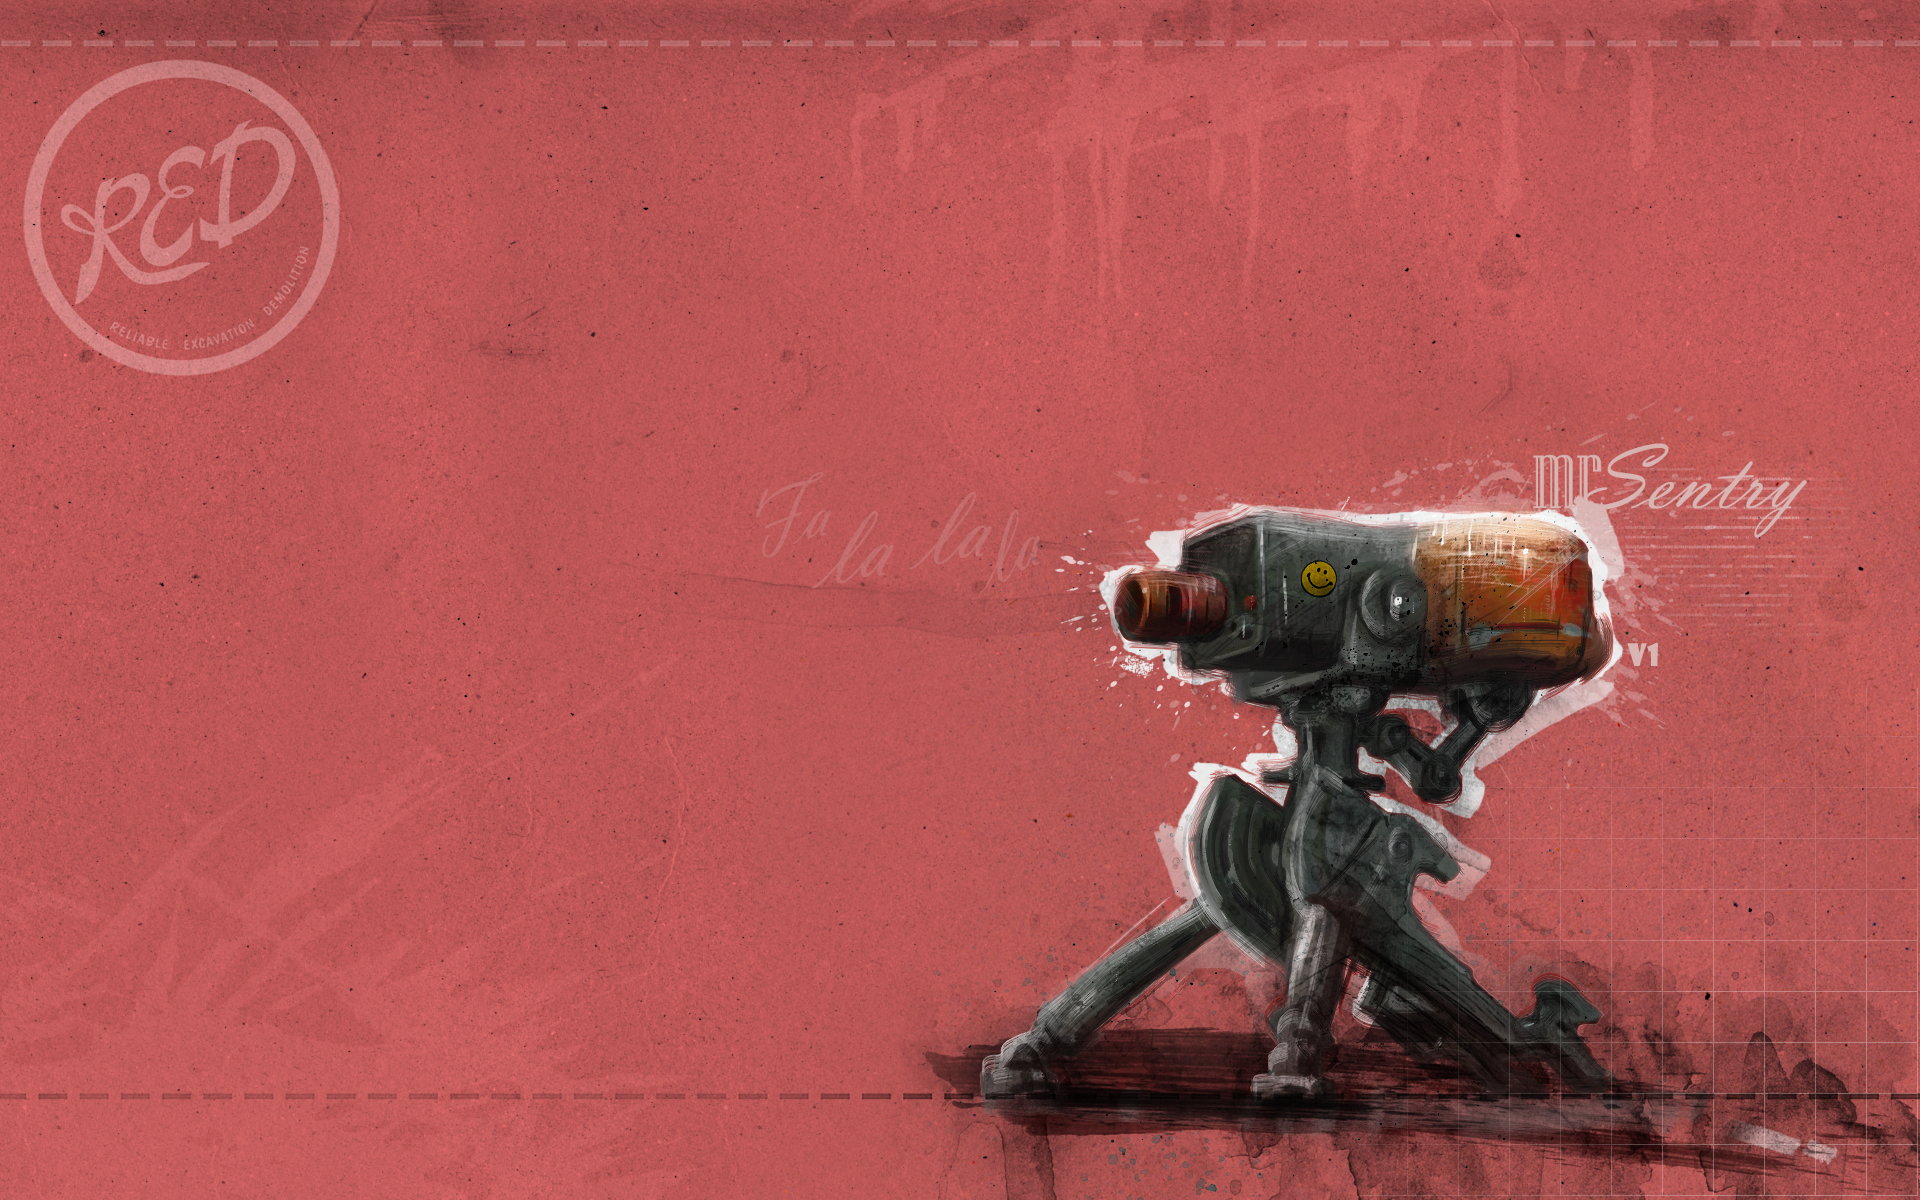 sentry tf2 team fortress 2 red HD Wallpaper   Architecture Design 1920x1200